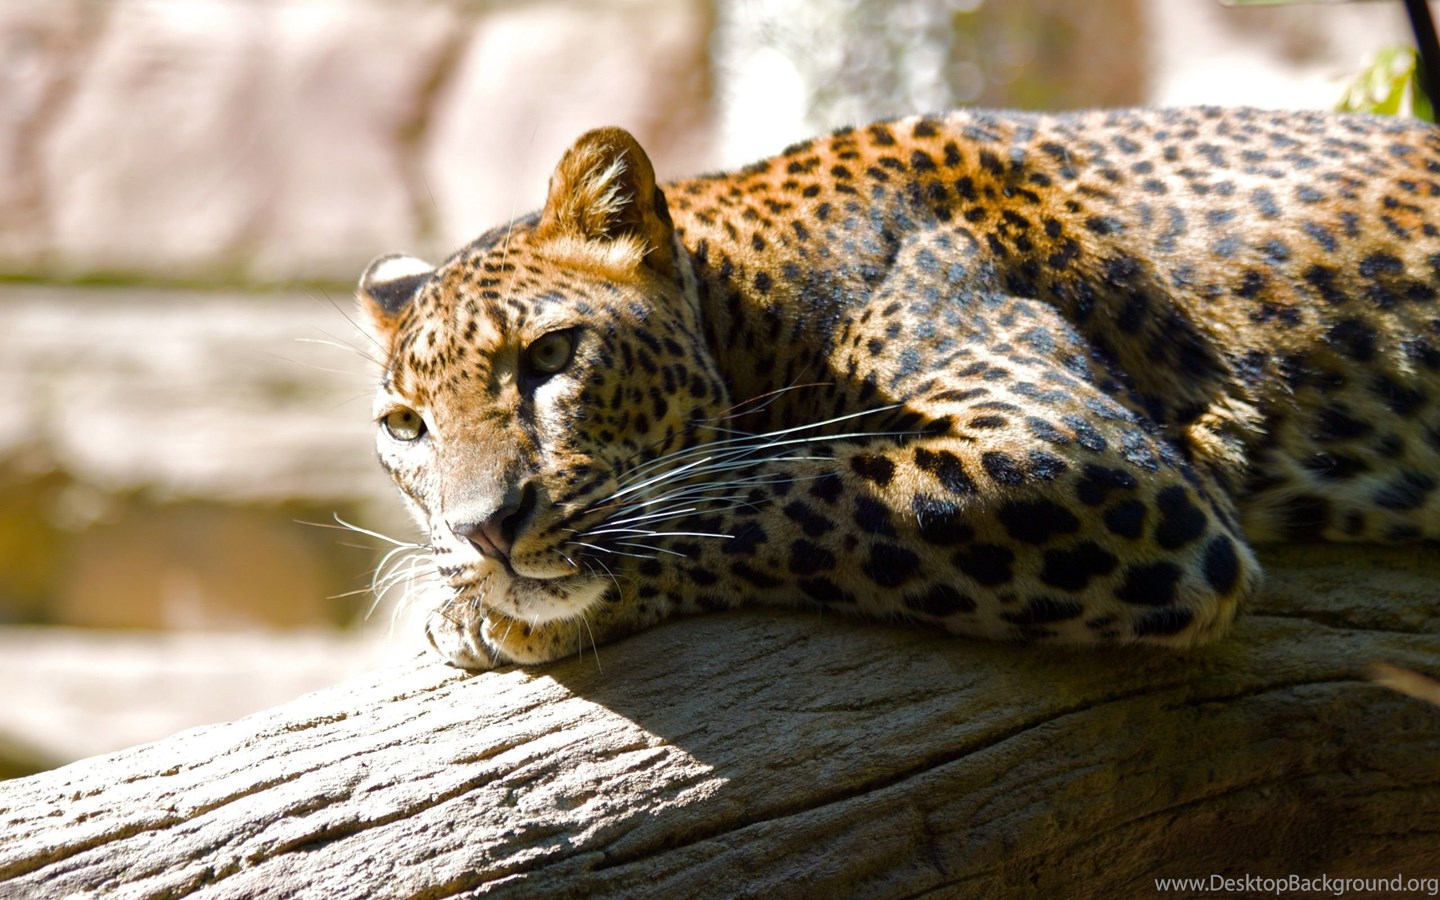 Jaguar animal hd wallpapers desktop background - Jaguar animal hd wallpapers ...